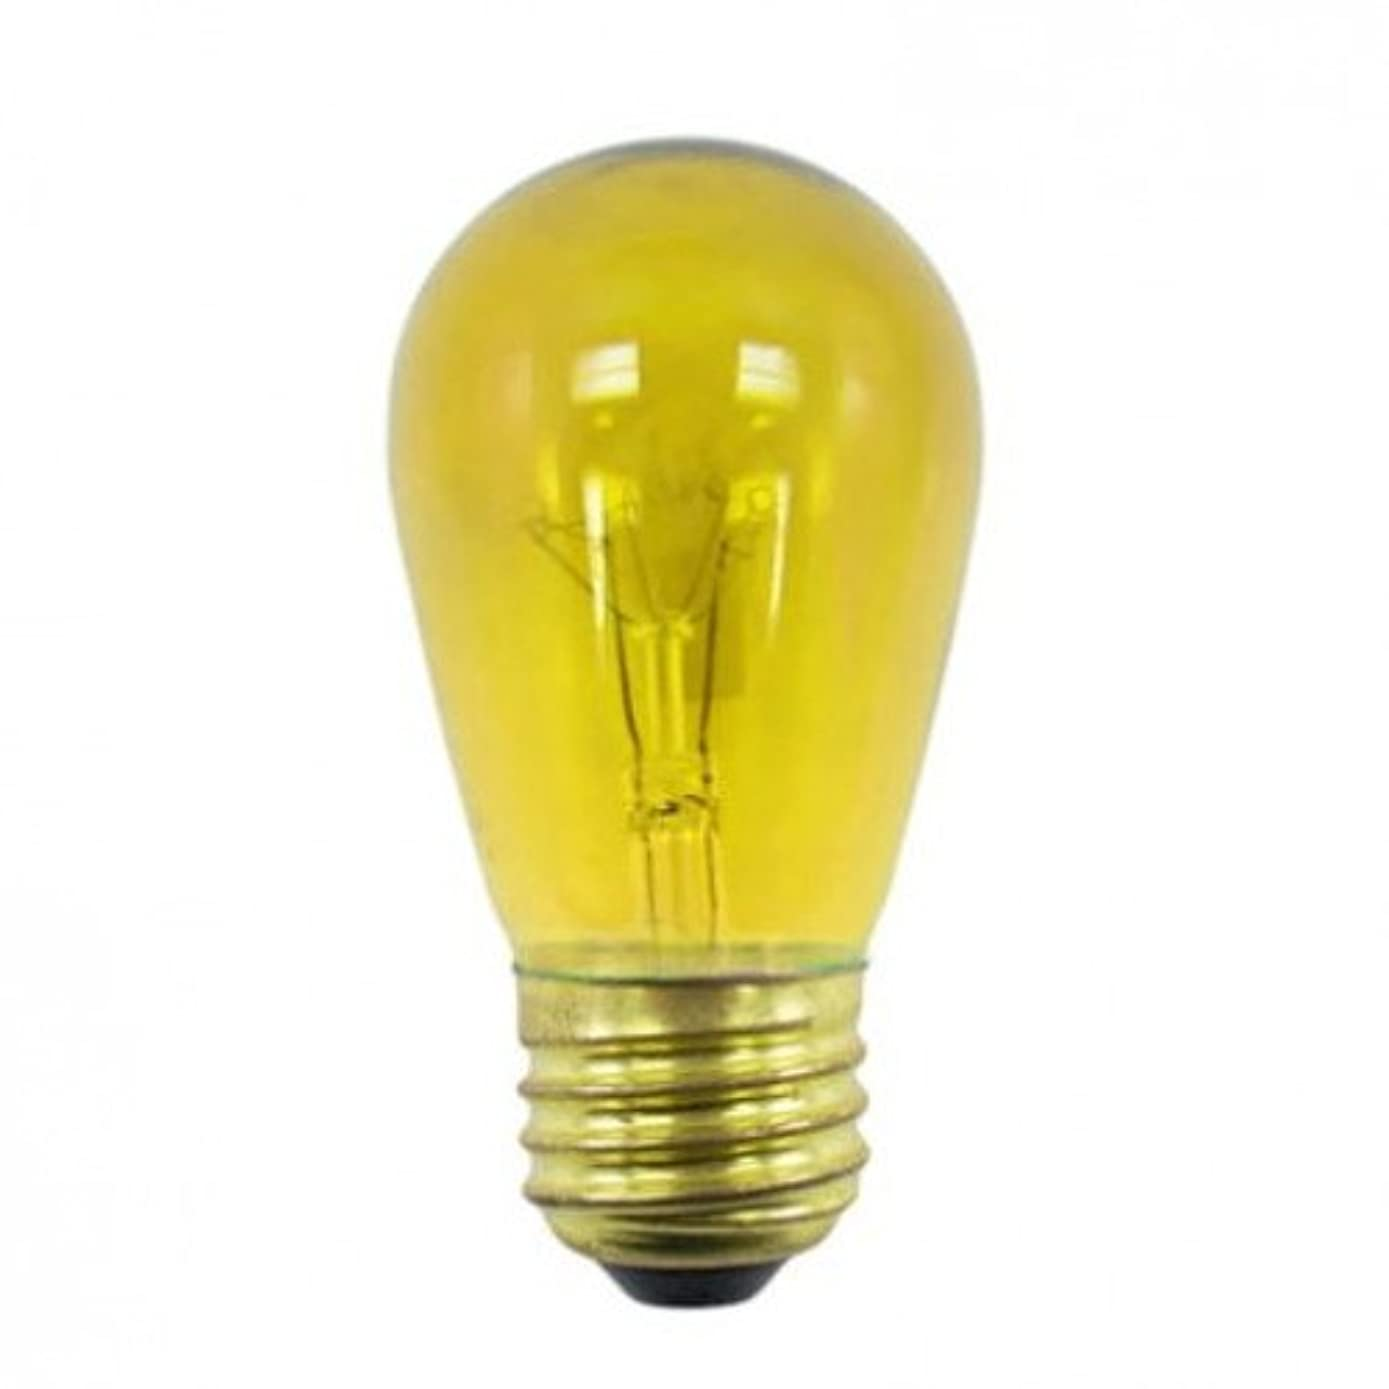 Norman Lamps 11S14-130V-TYx50 S14 Transparent Yellow Light Bulb, 11W, 130V (Pack of 50)